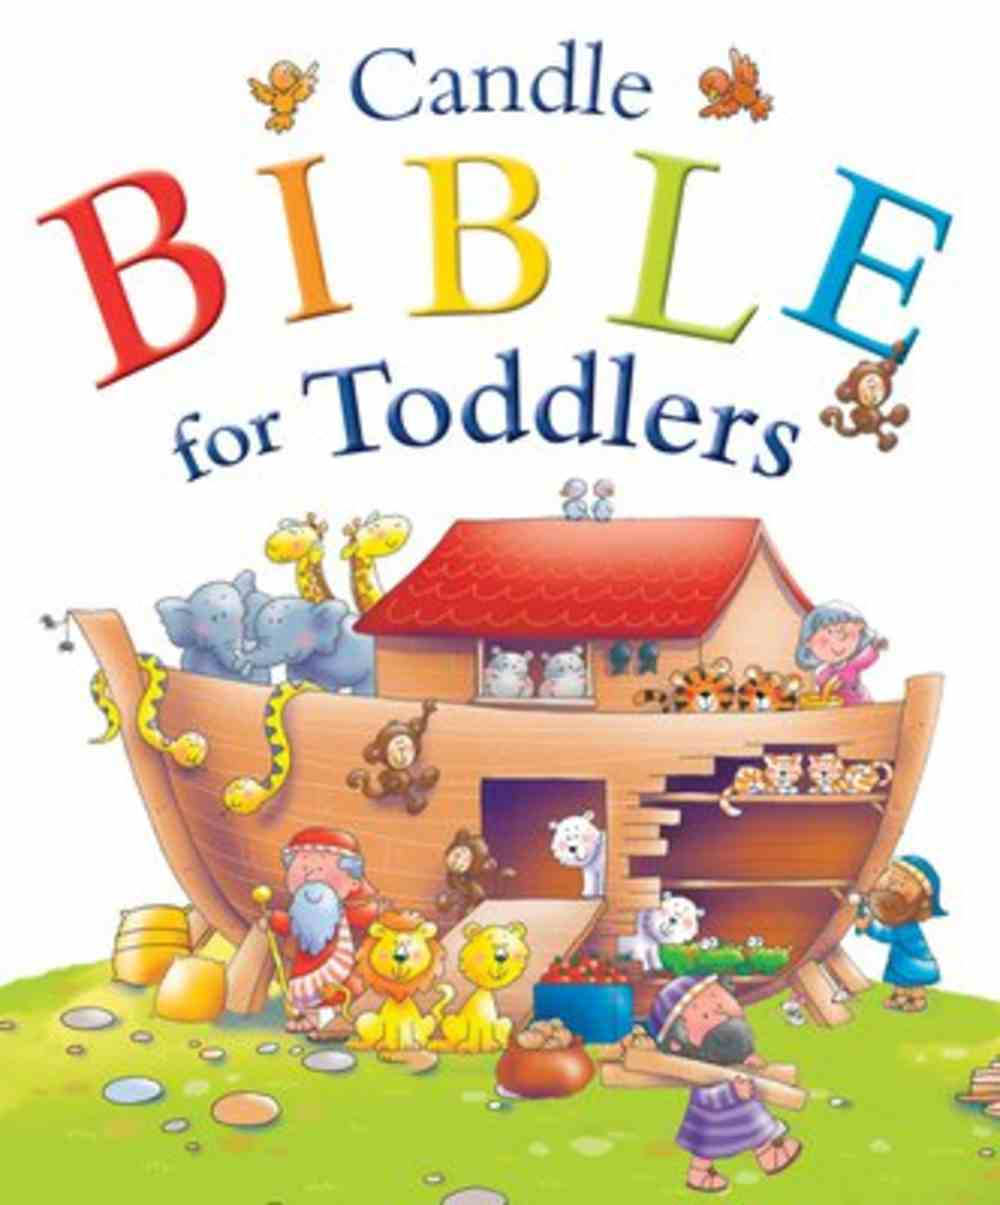 Candle Bible For Toddlers (Candle Bible For Toddlers Series) Hardback